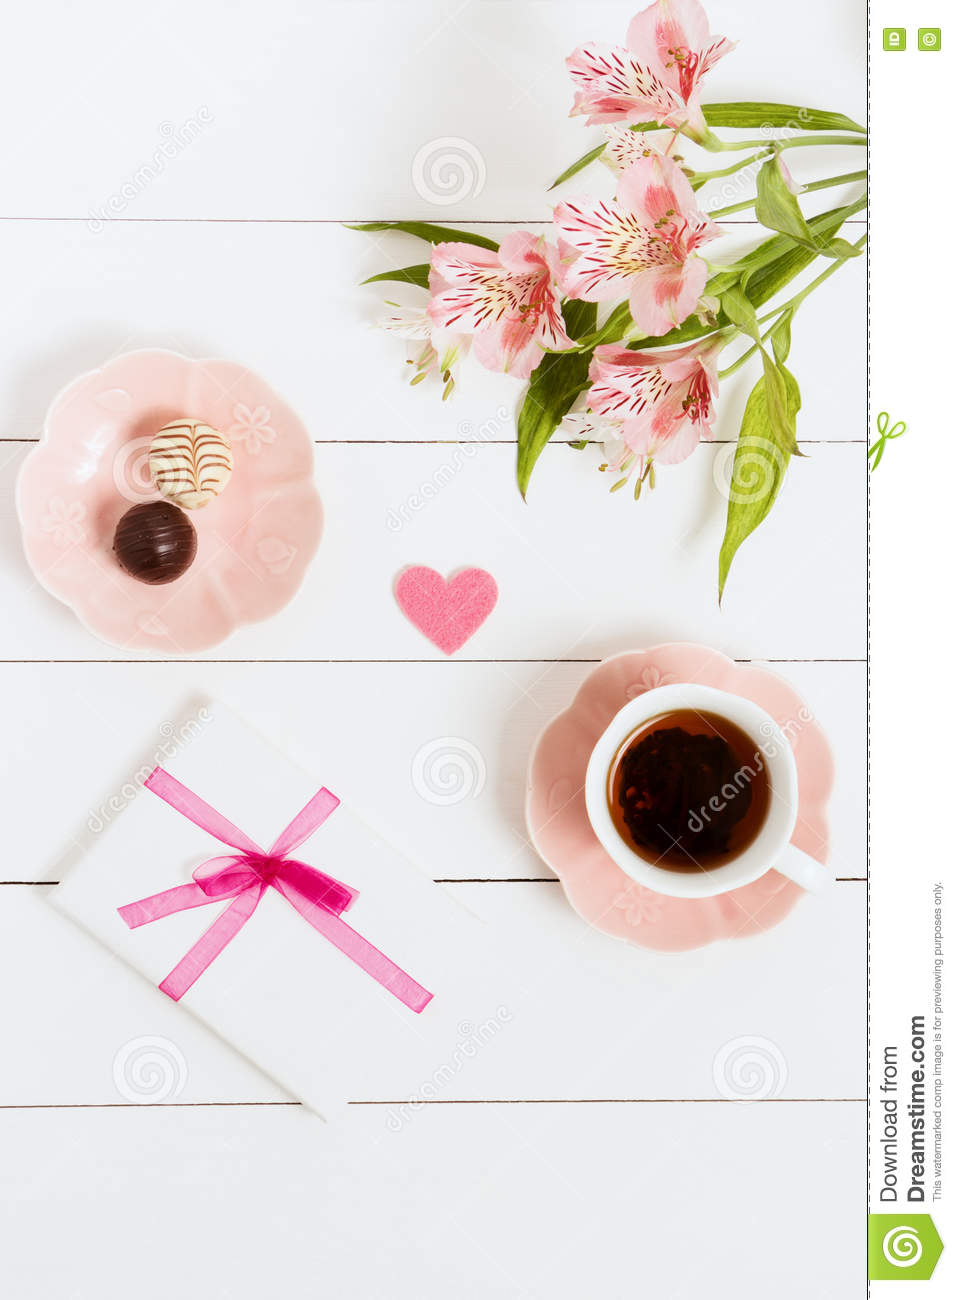 Gift to Valentine s Day, with tea and flowers on a white background. Top view, film effect